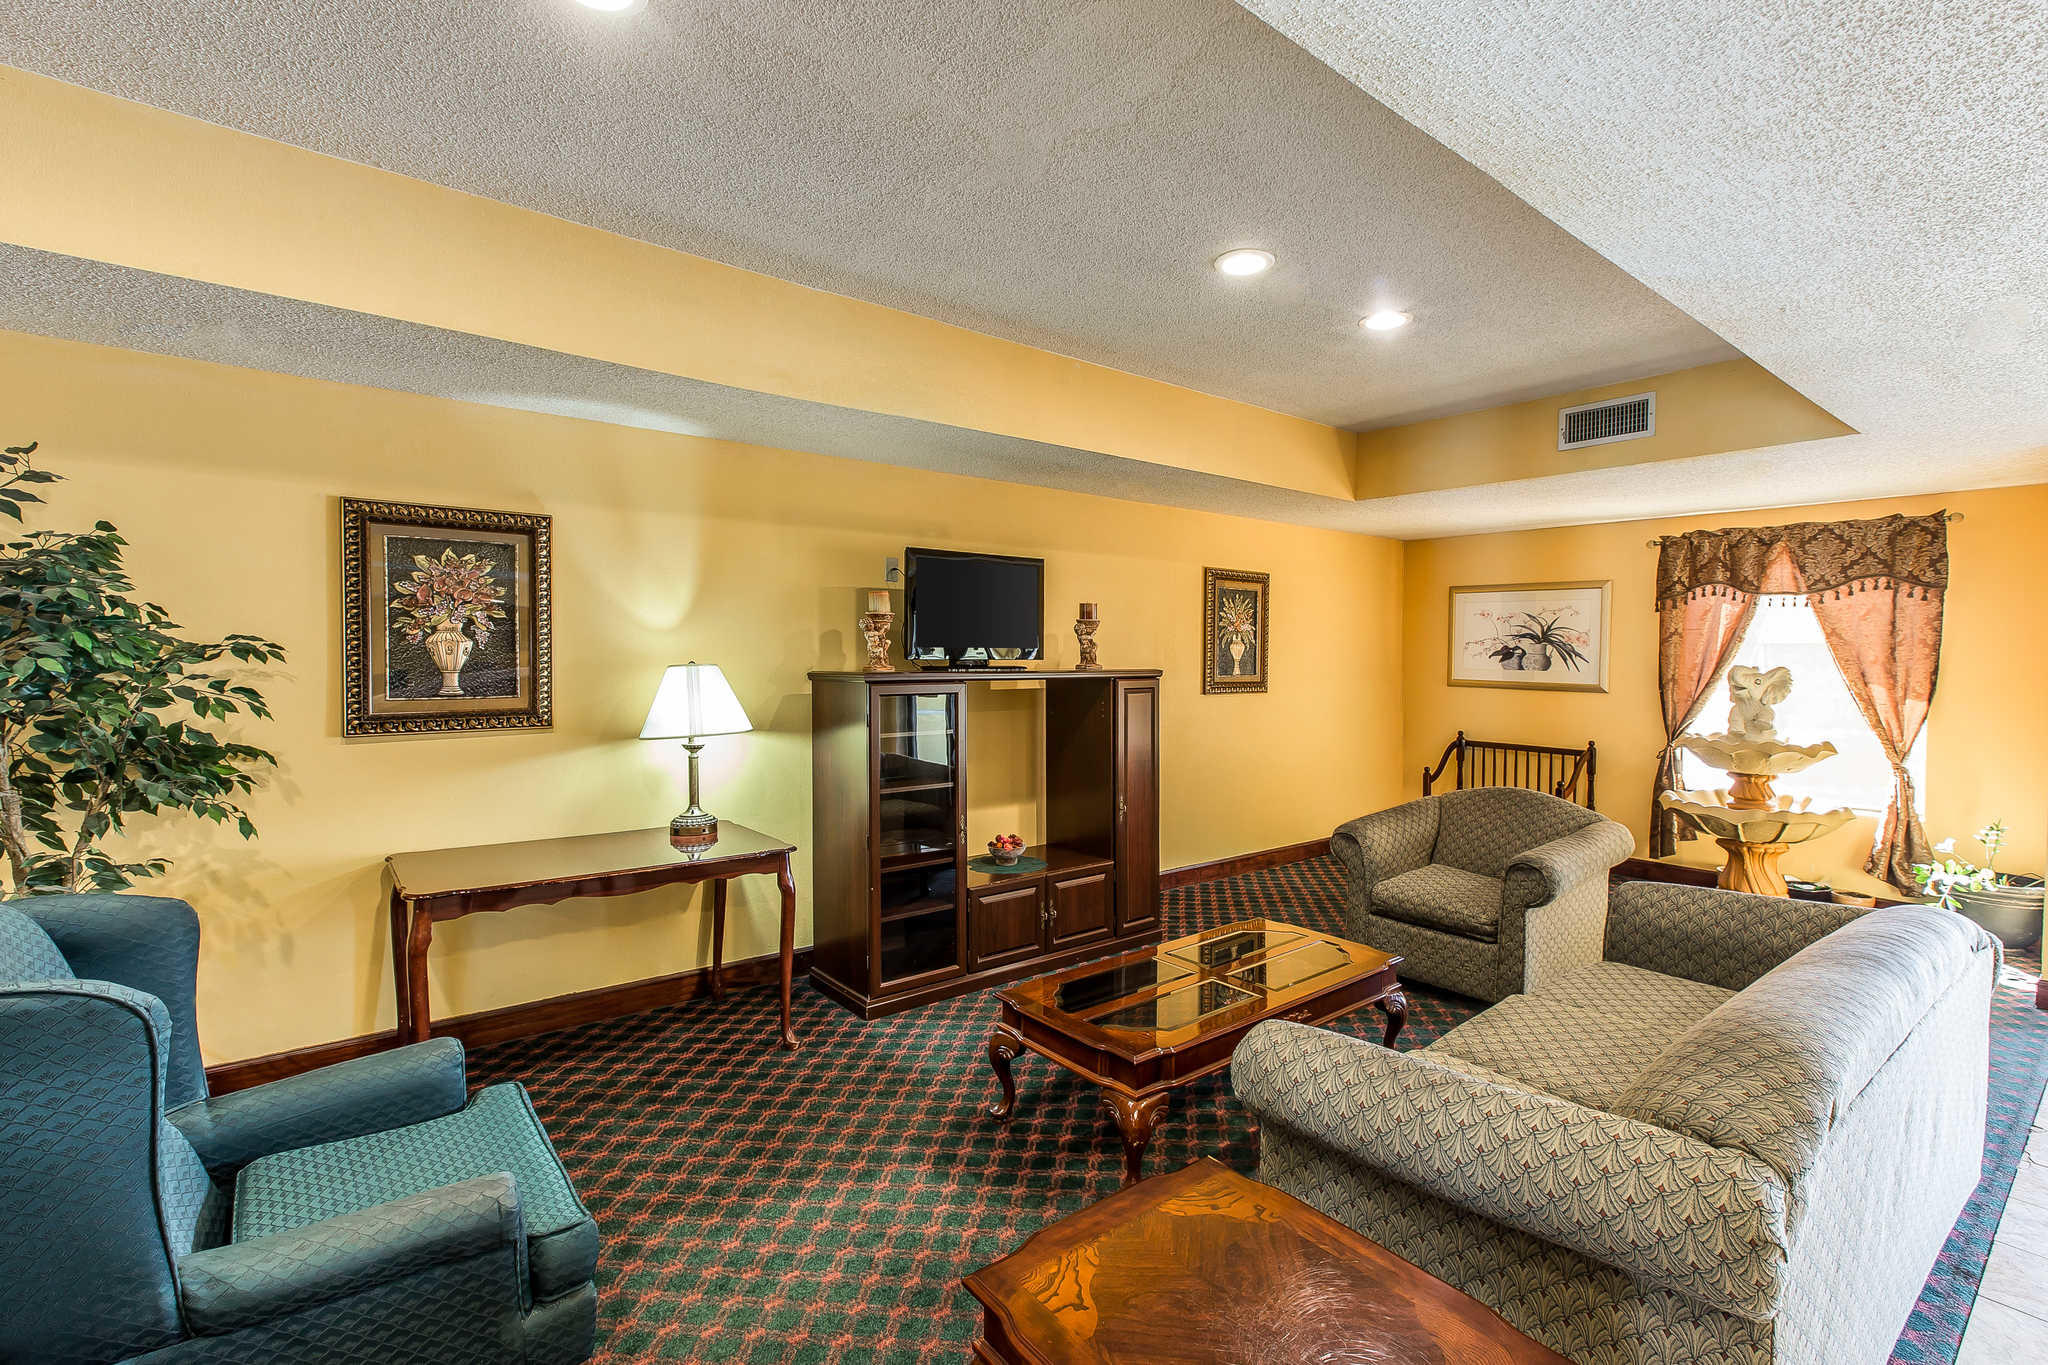 Hotels Near Moultrie Ga